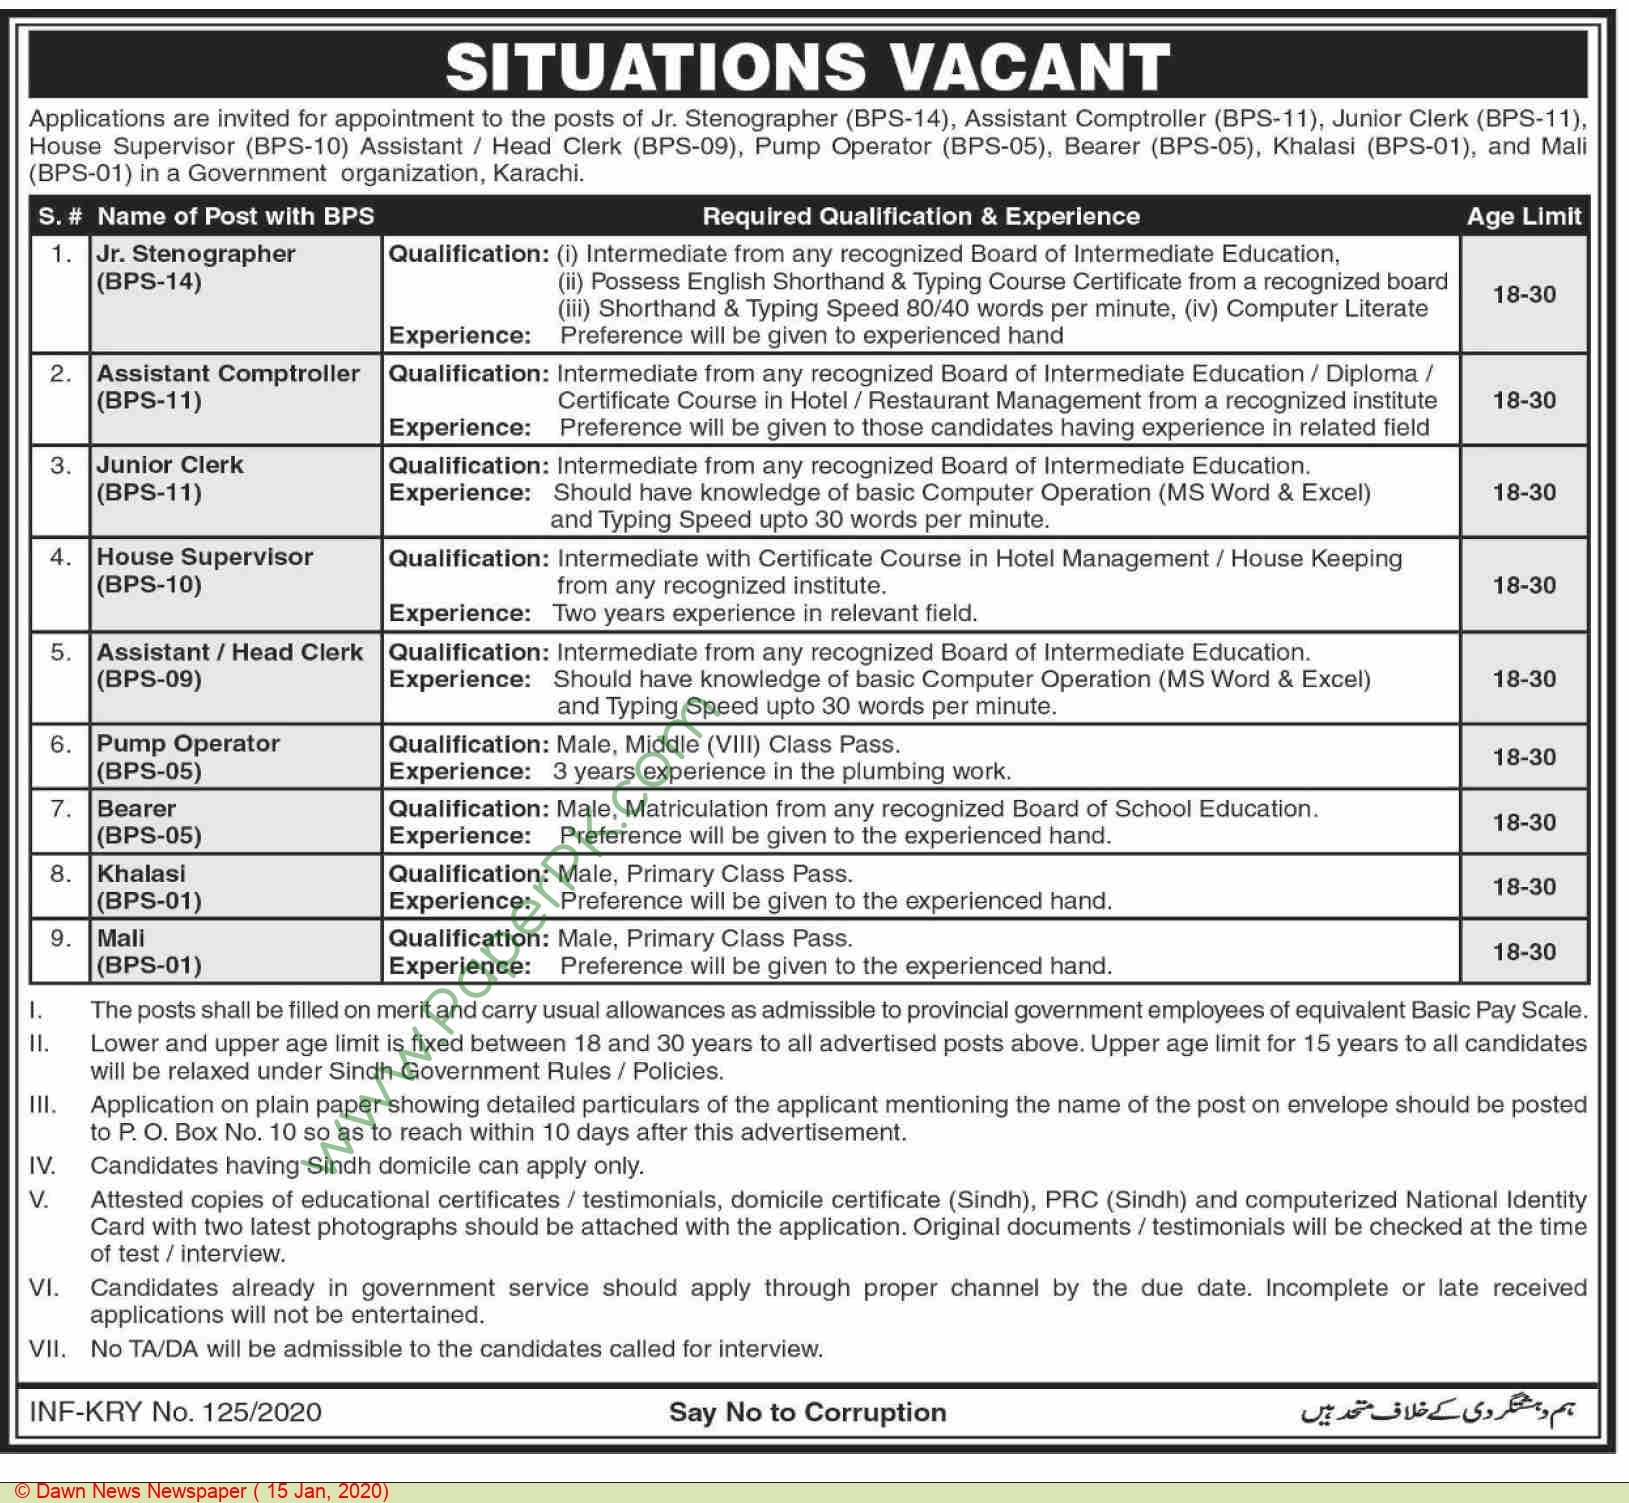 Government of Sindh jobs newspaper ad for Pump Operator in Karachi